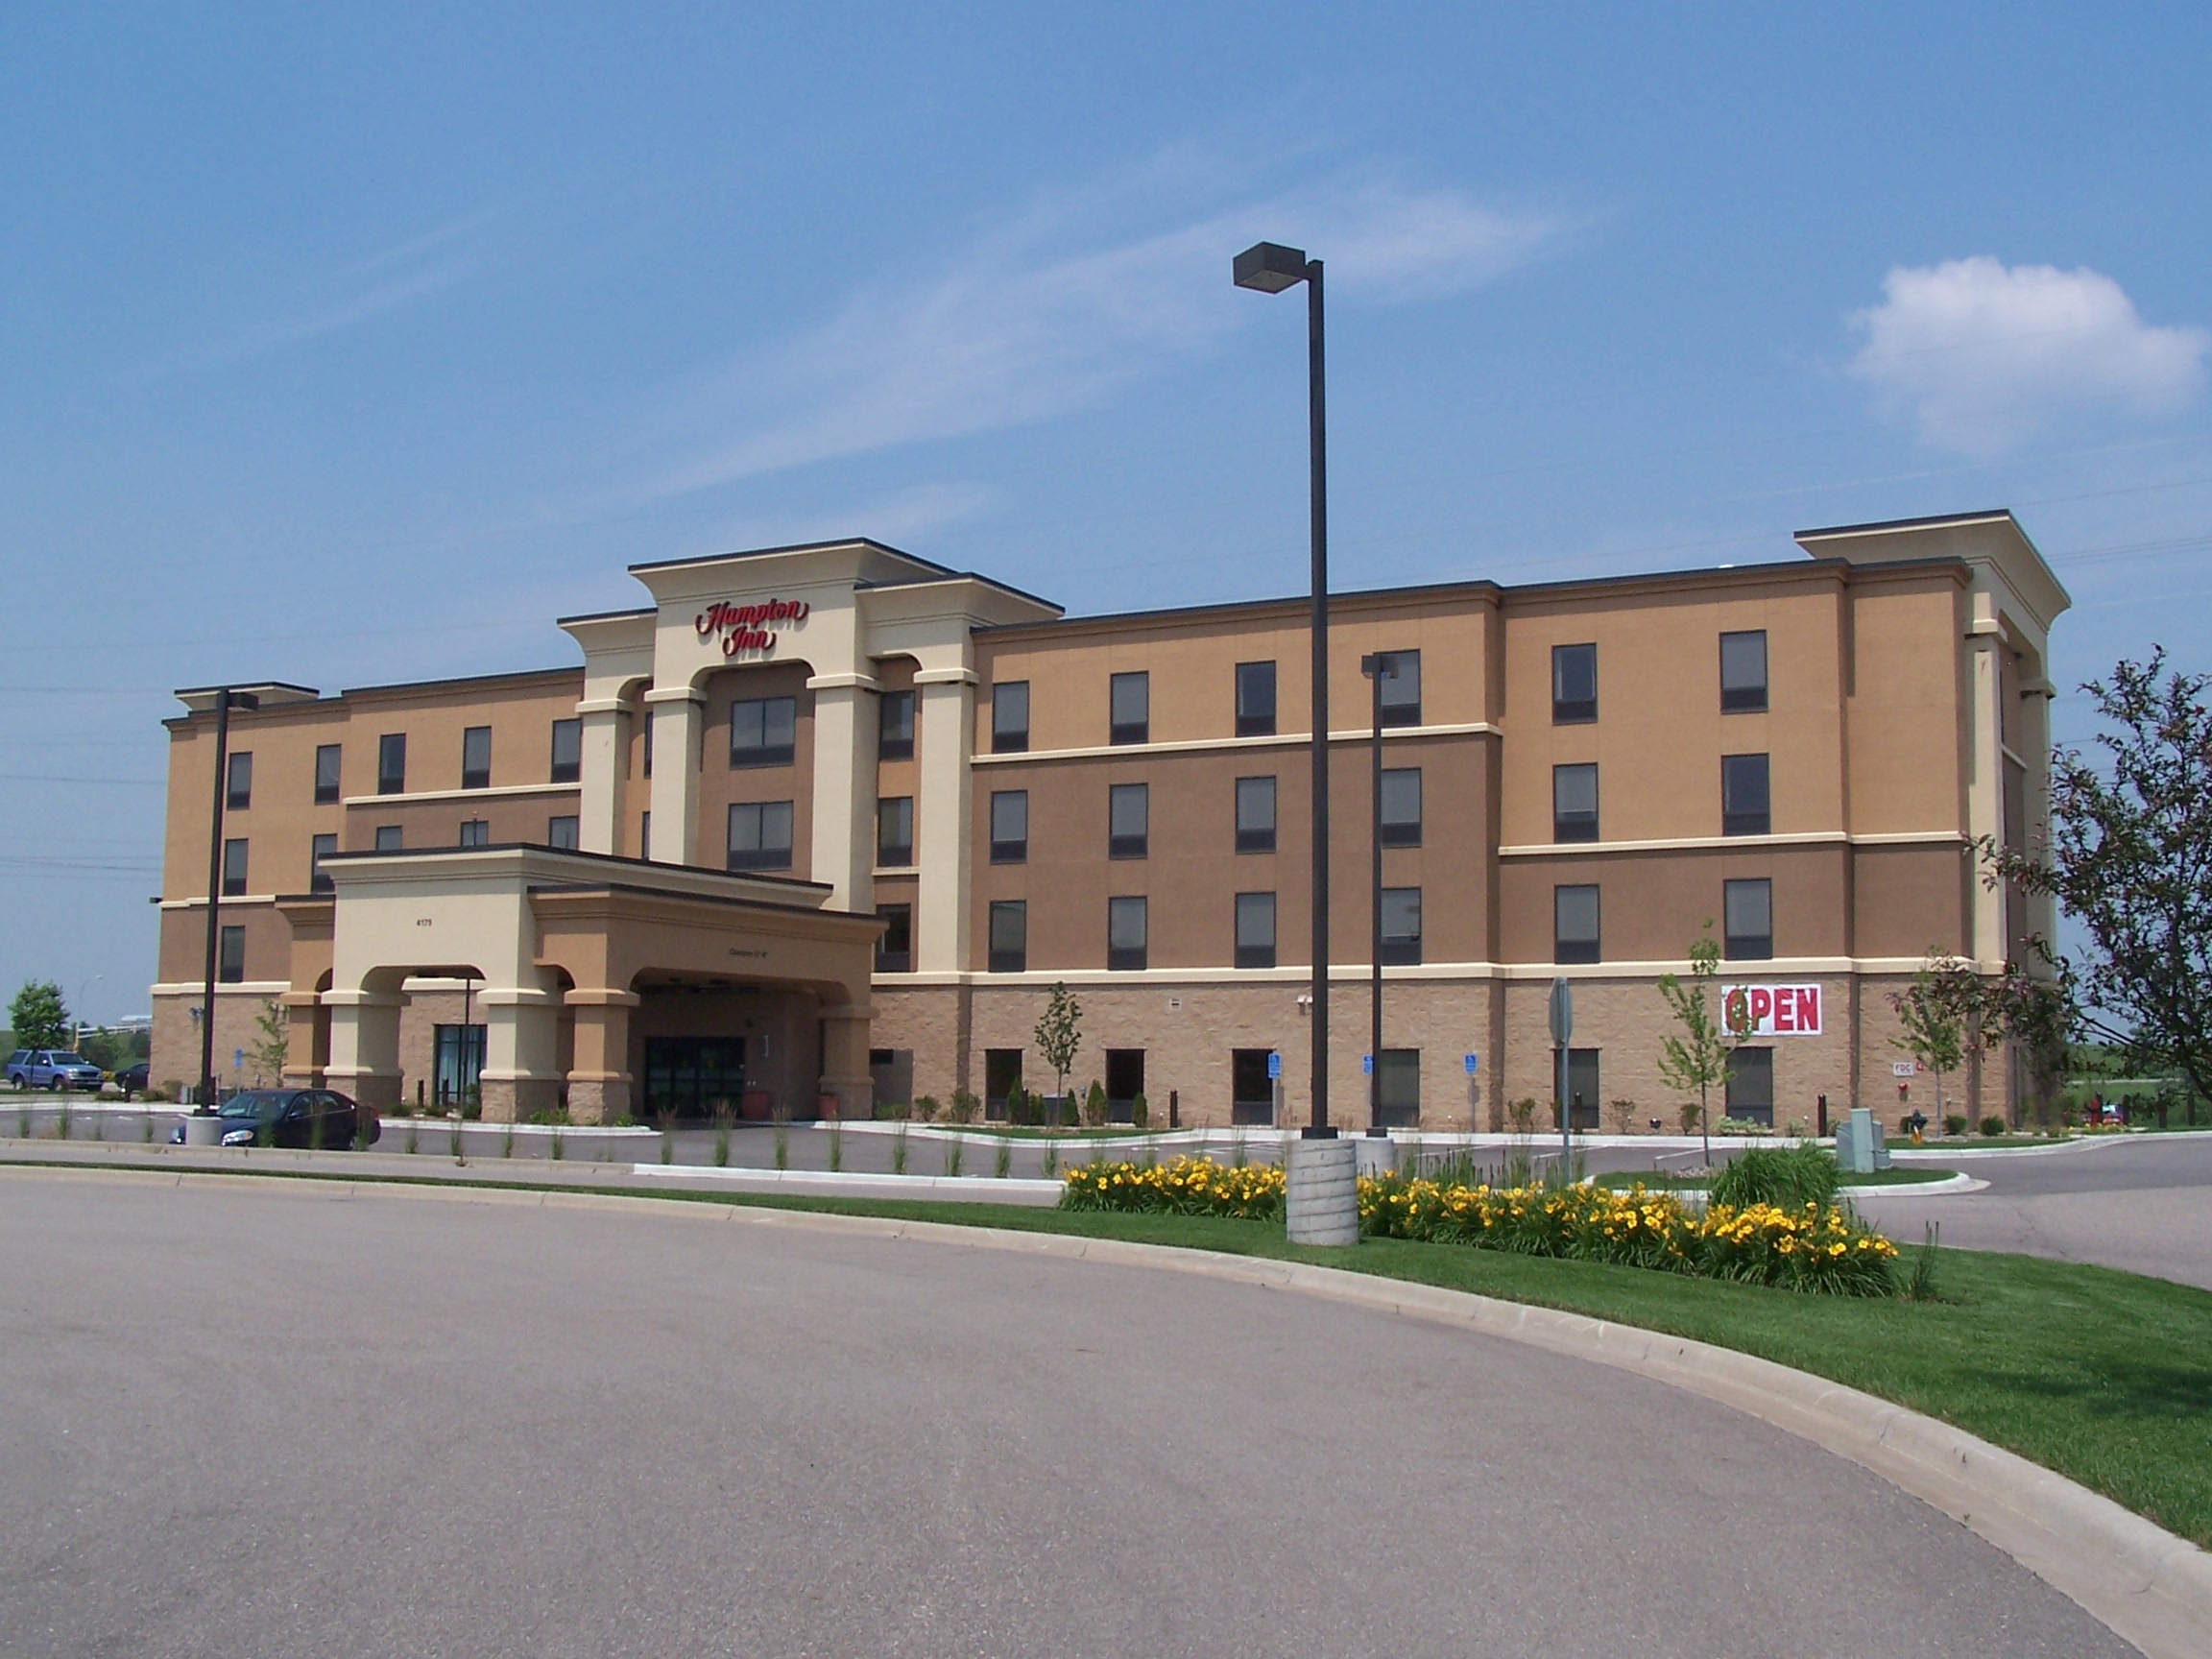 Outside view of the Hampton Inn & Suites in Shakopee, MN